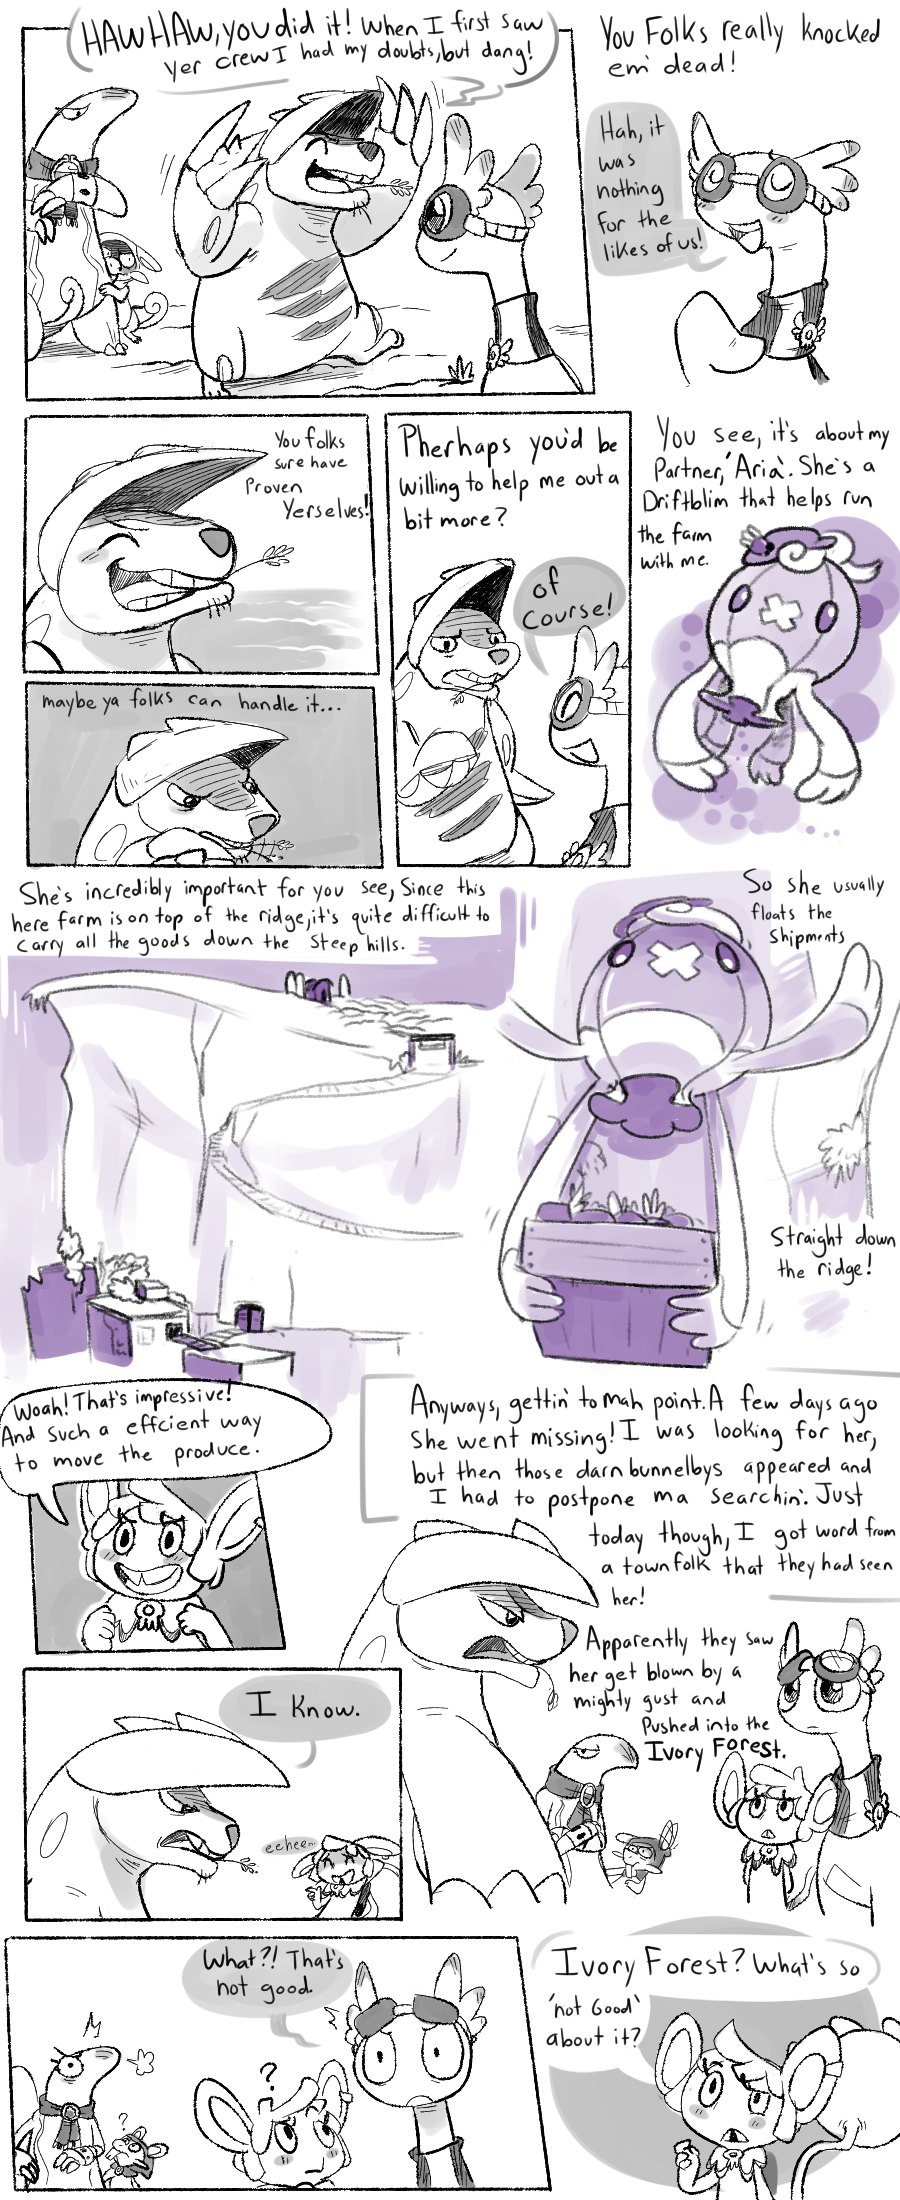 Mission 1 Prologue pg2 by CrazyIguana